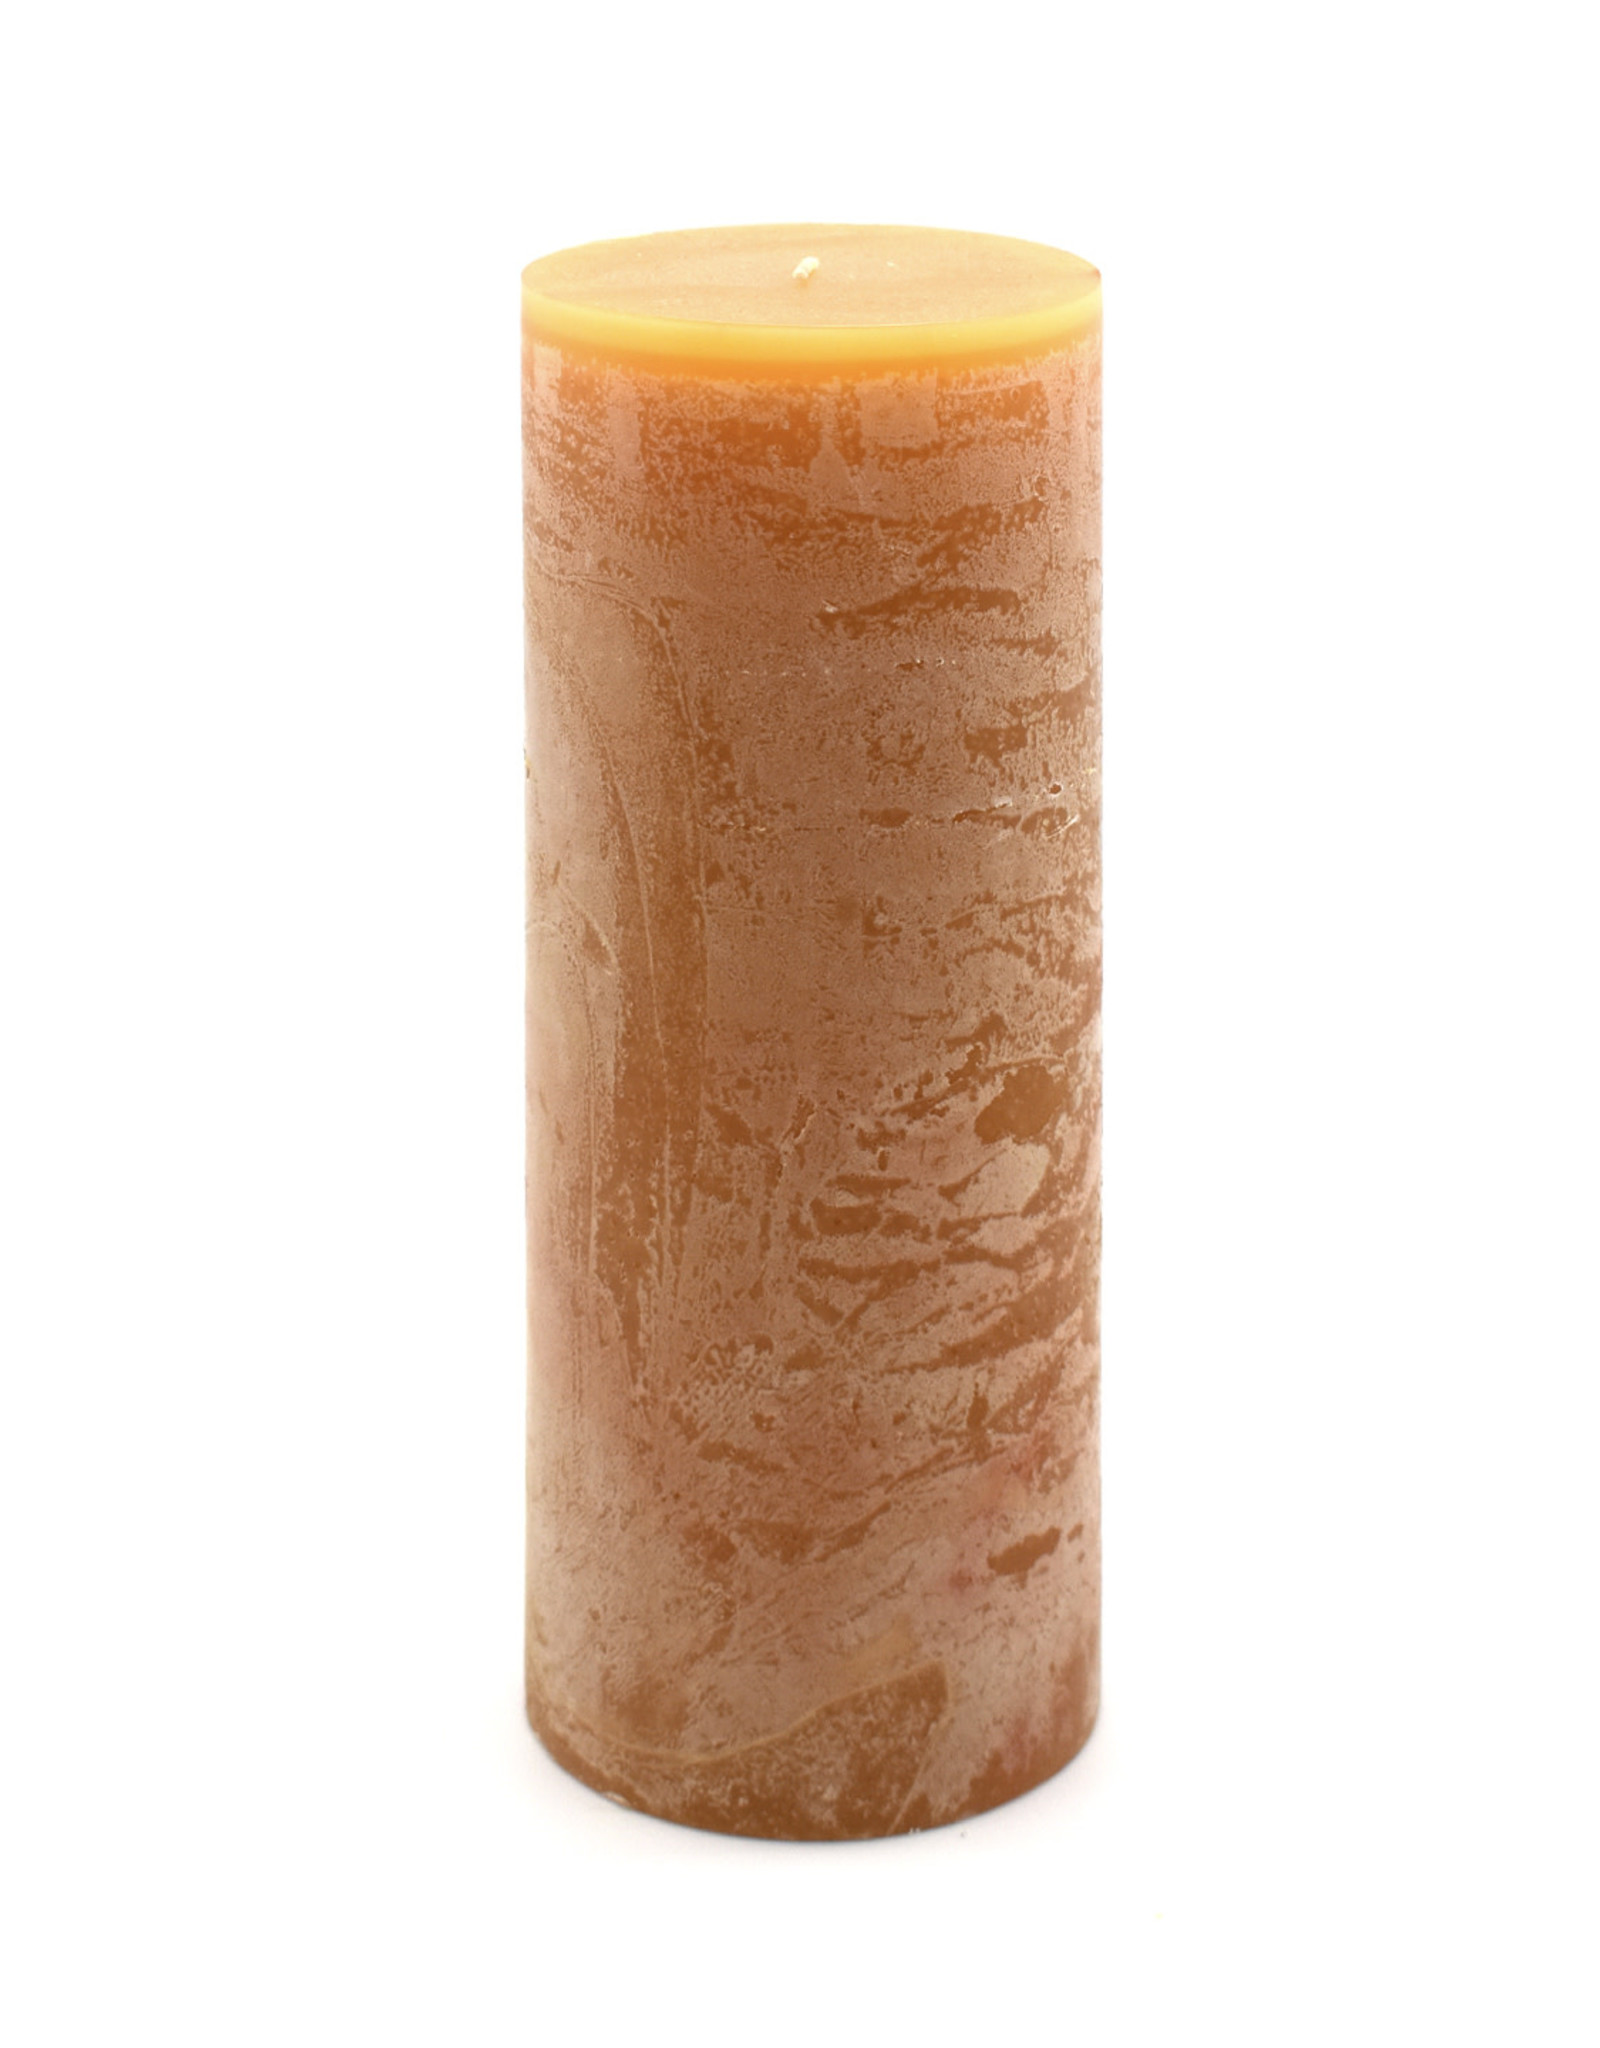 Timber Candle (Tall)